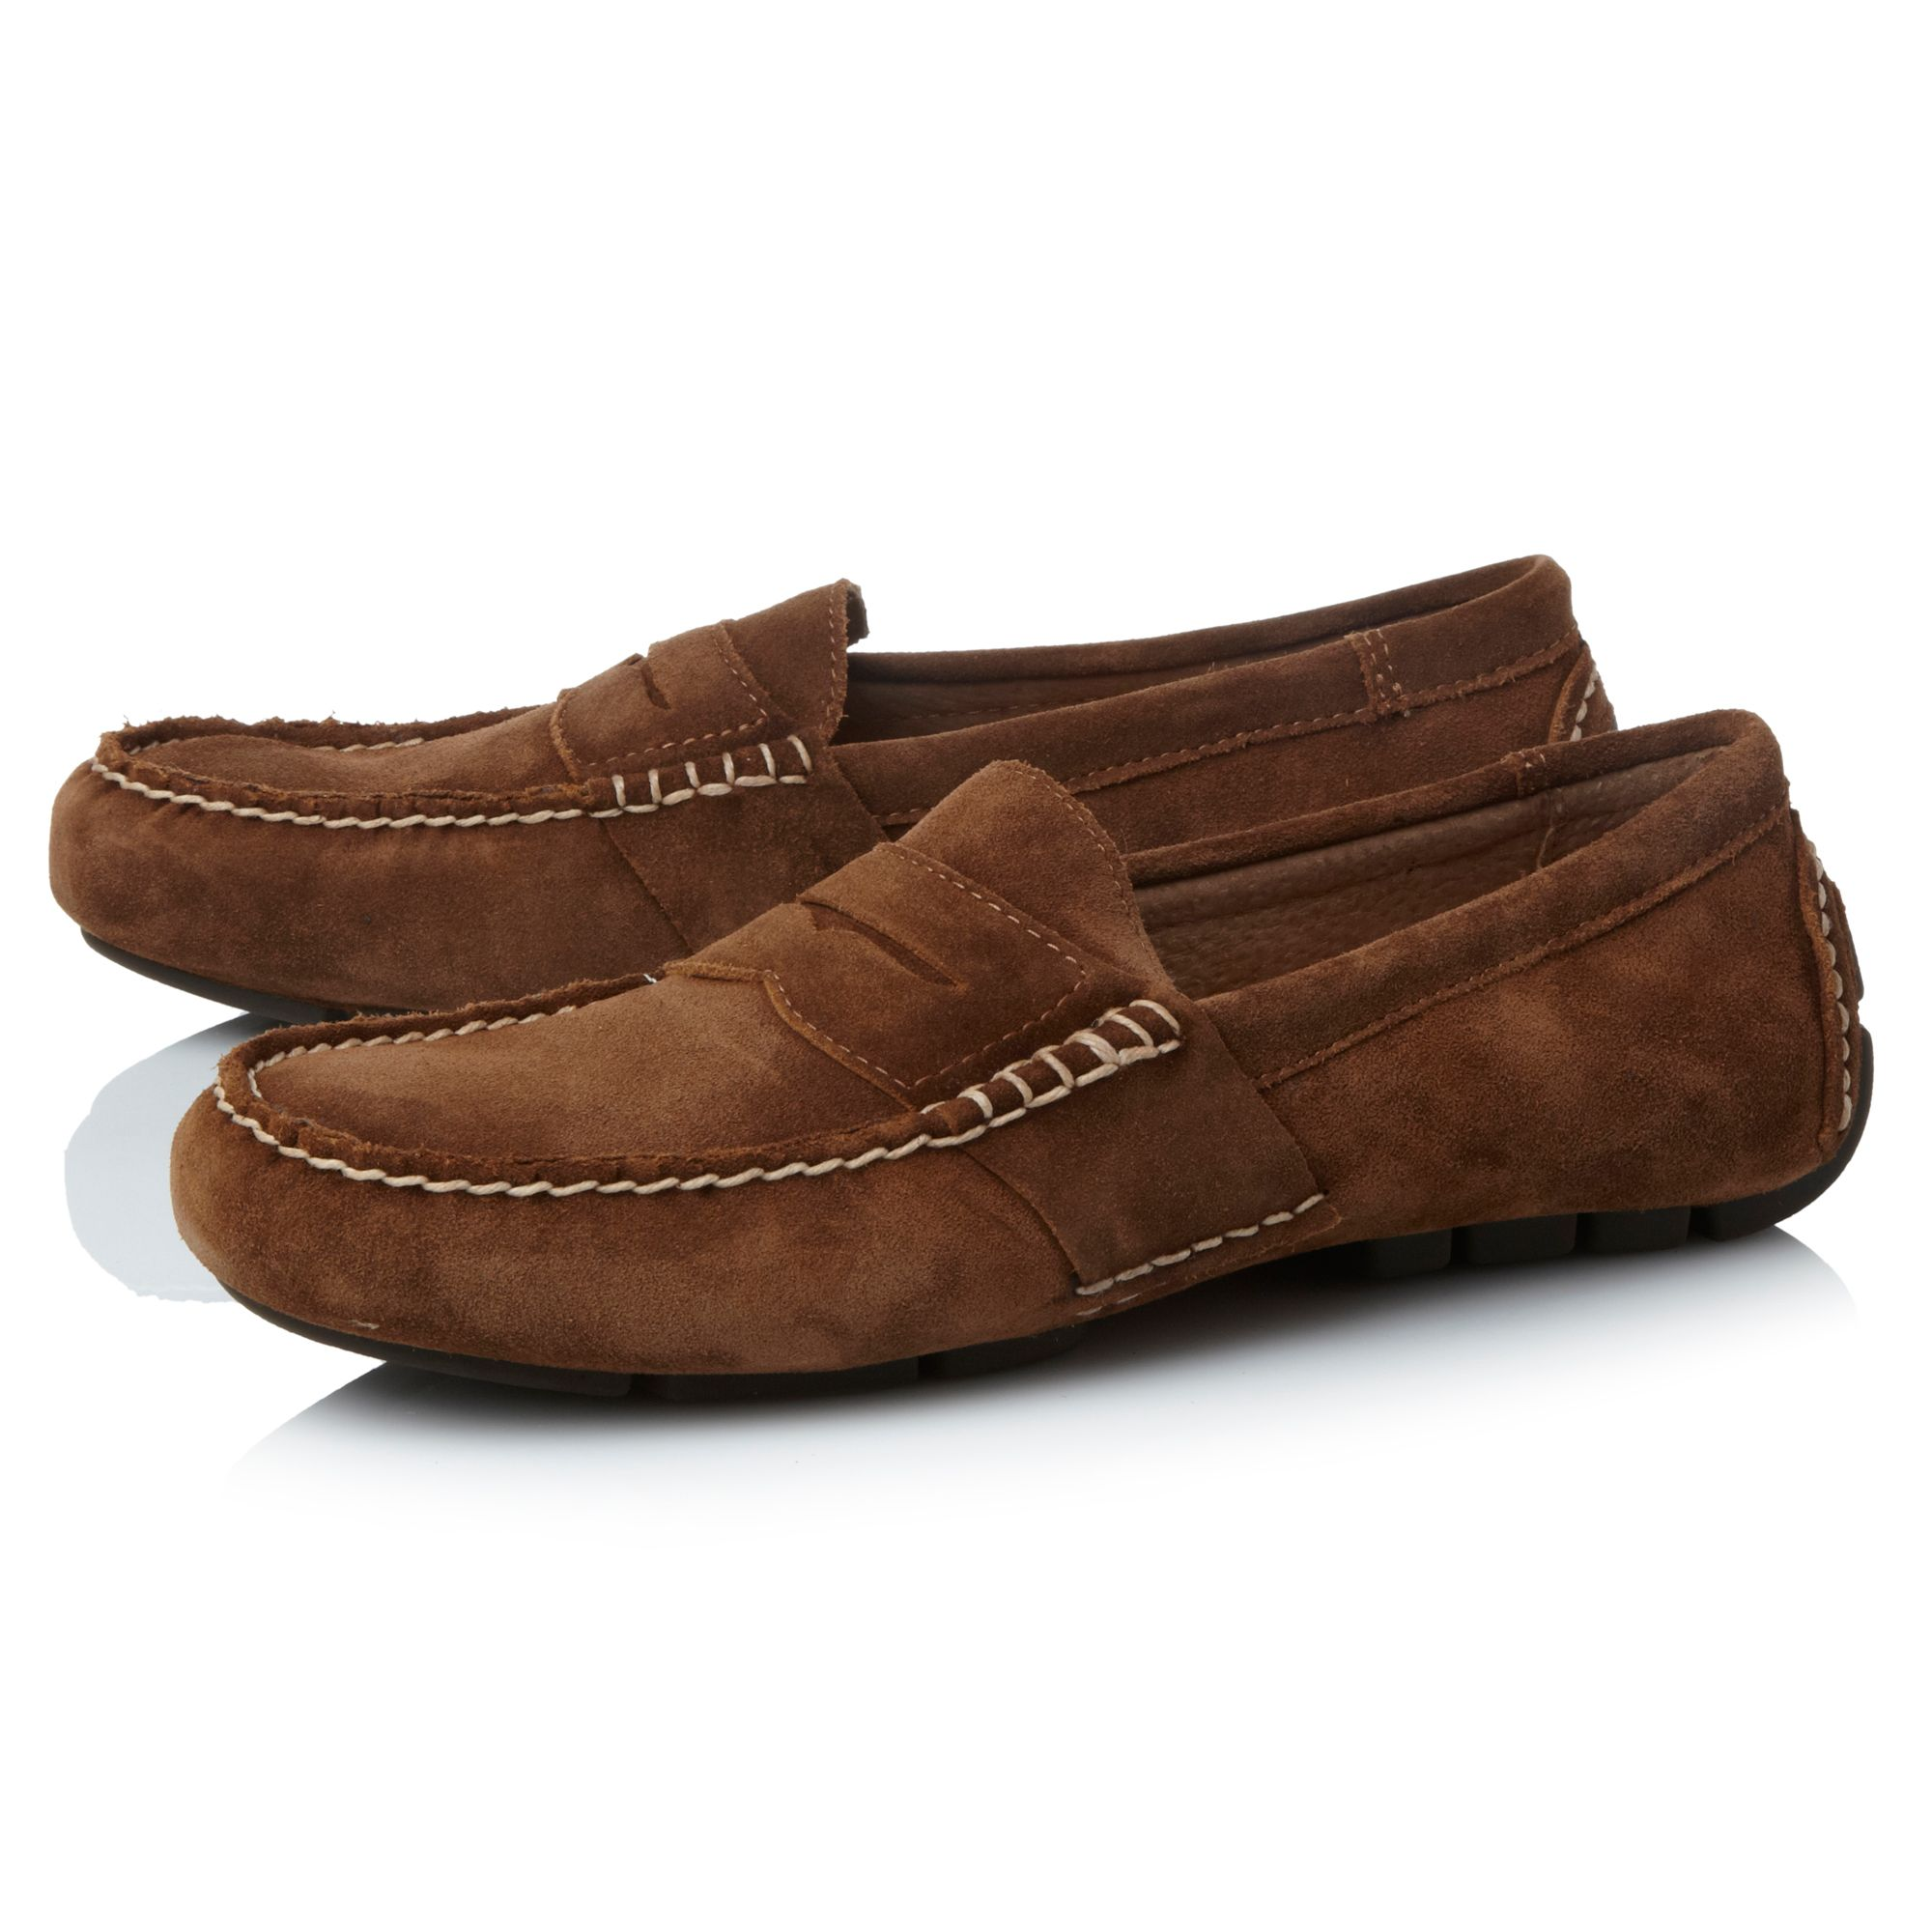 Telly suede penny loafers